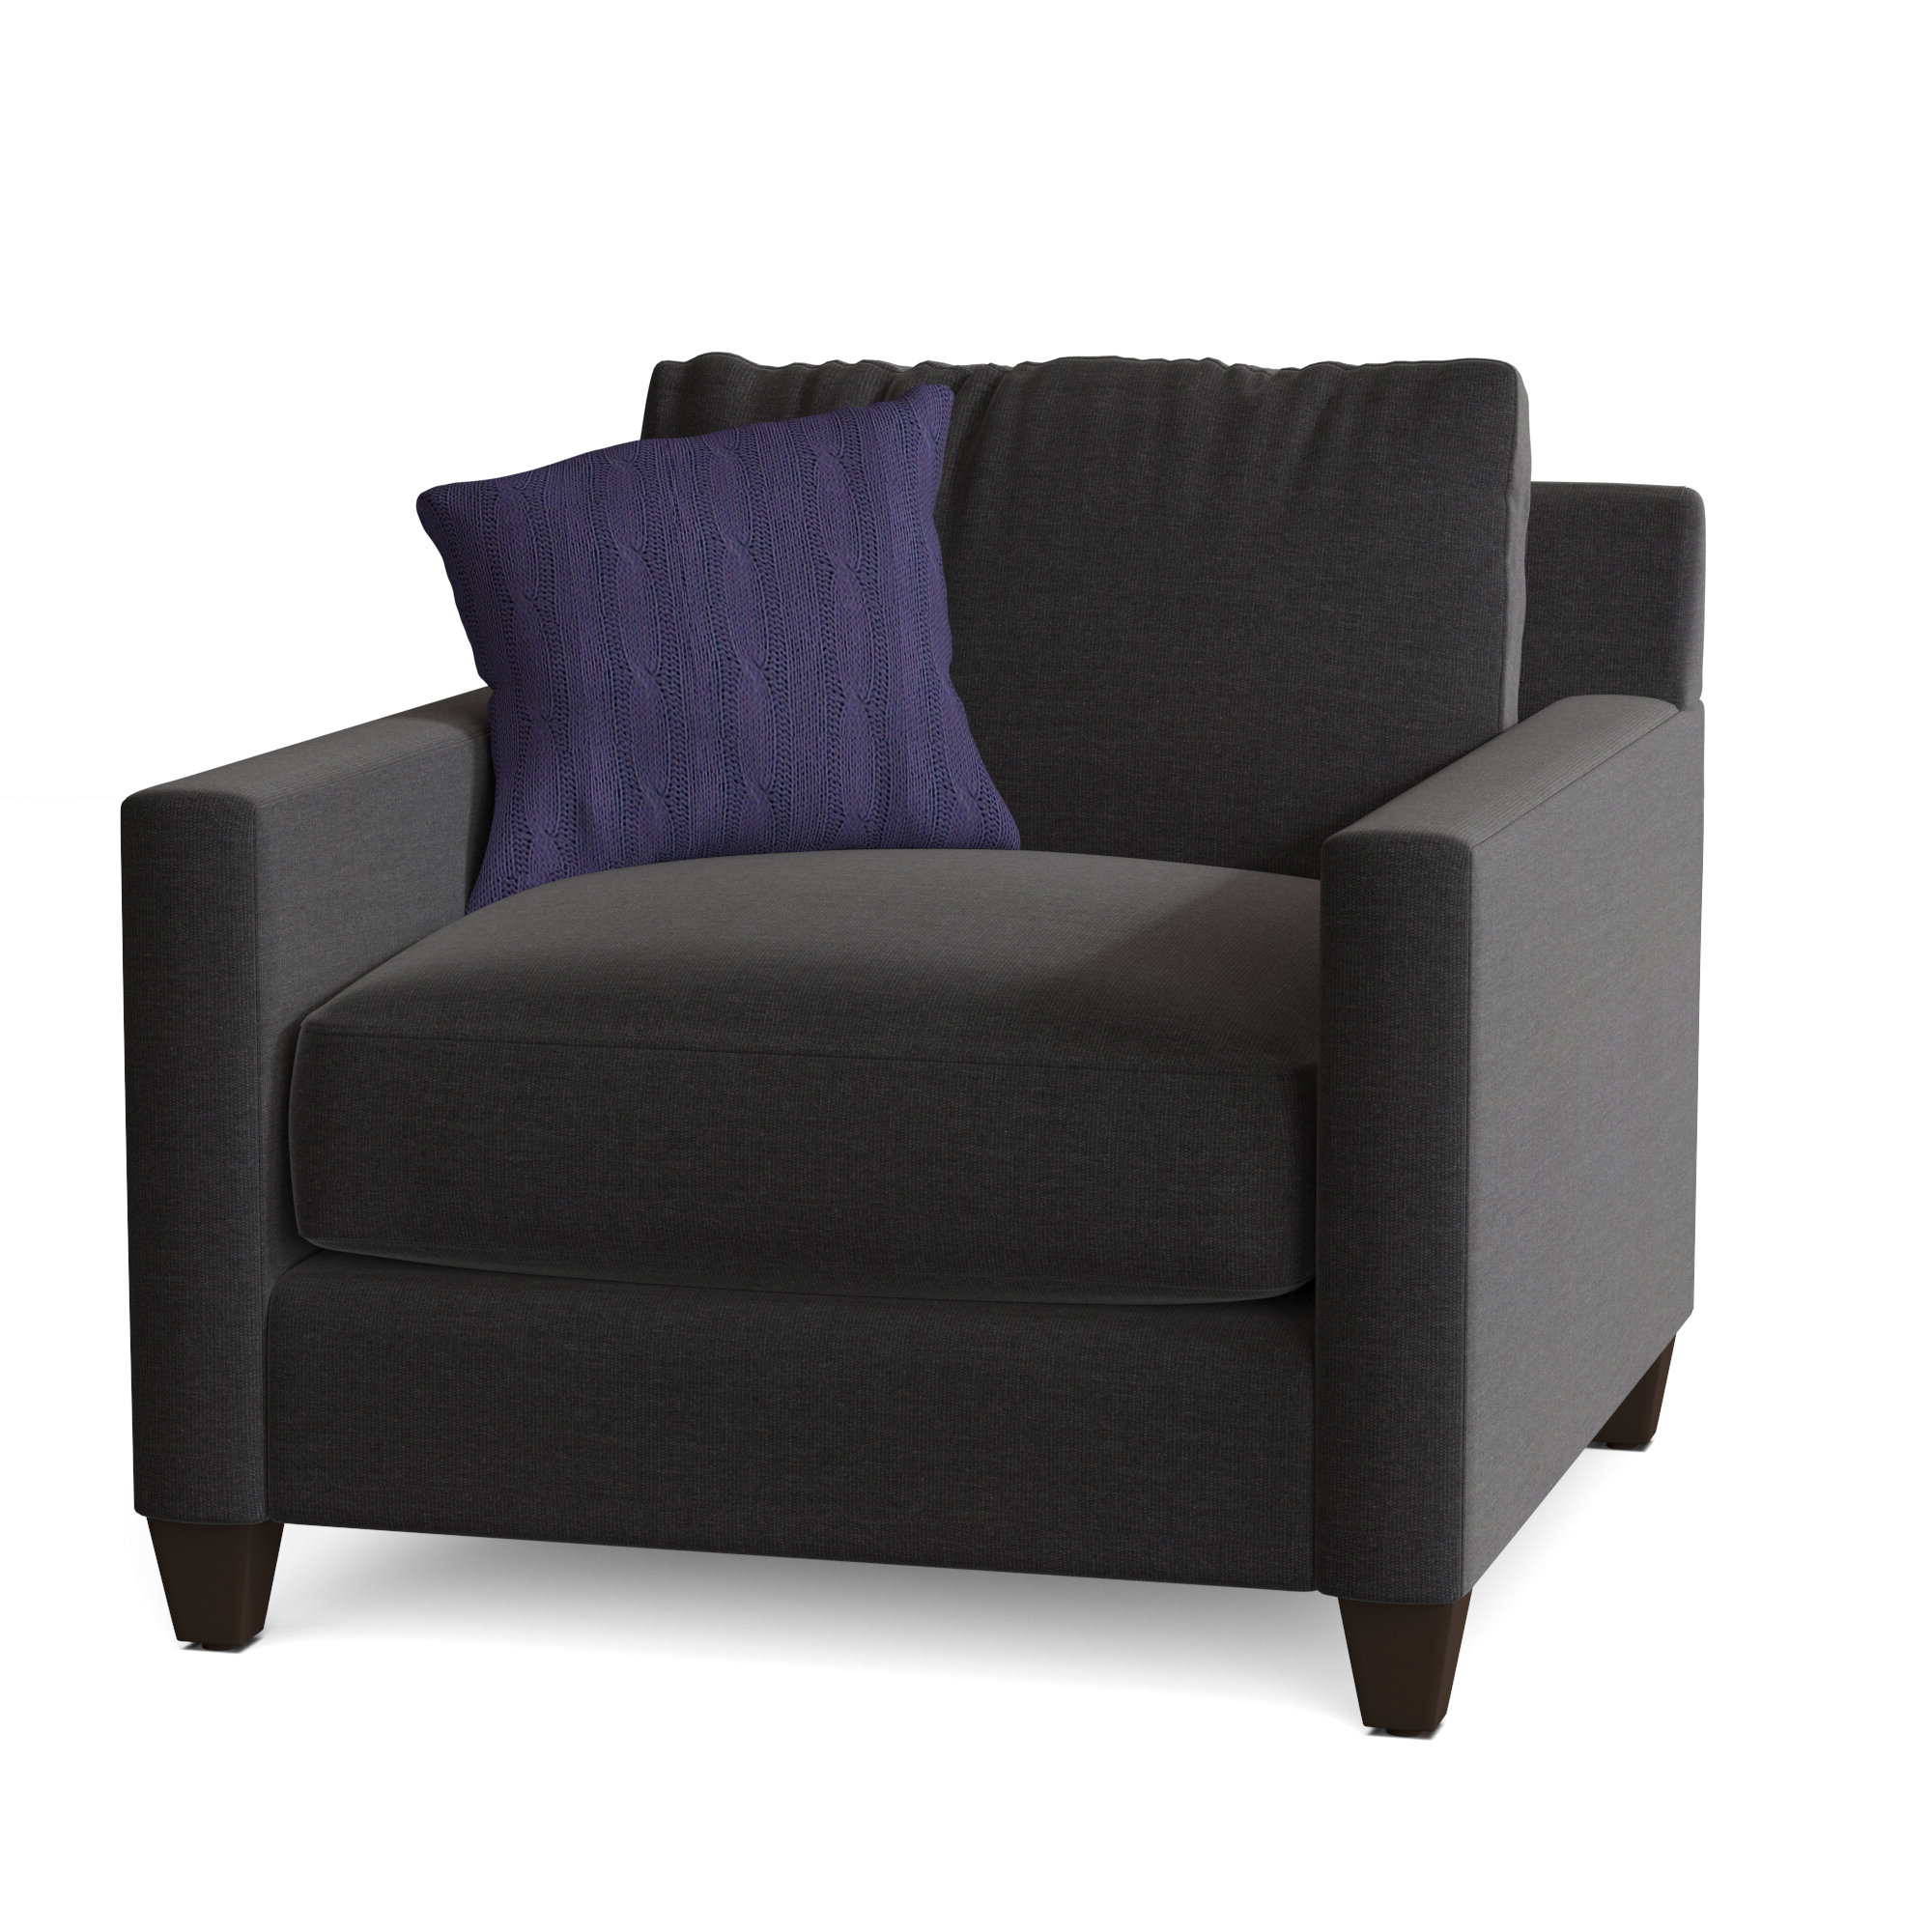 "Polyester Blend Armchairs For Most Up To Date Kerry 38"" W Polyester Blend Down Cushion Armchair (View 7 of 20)"